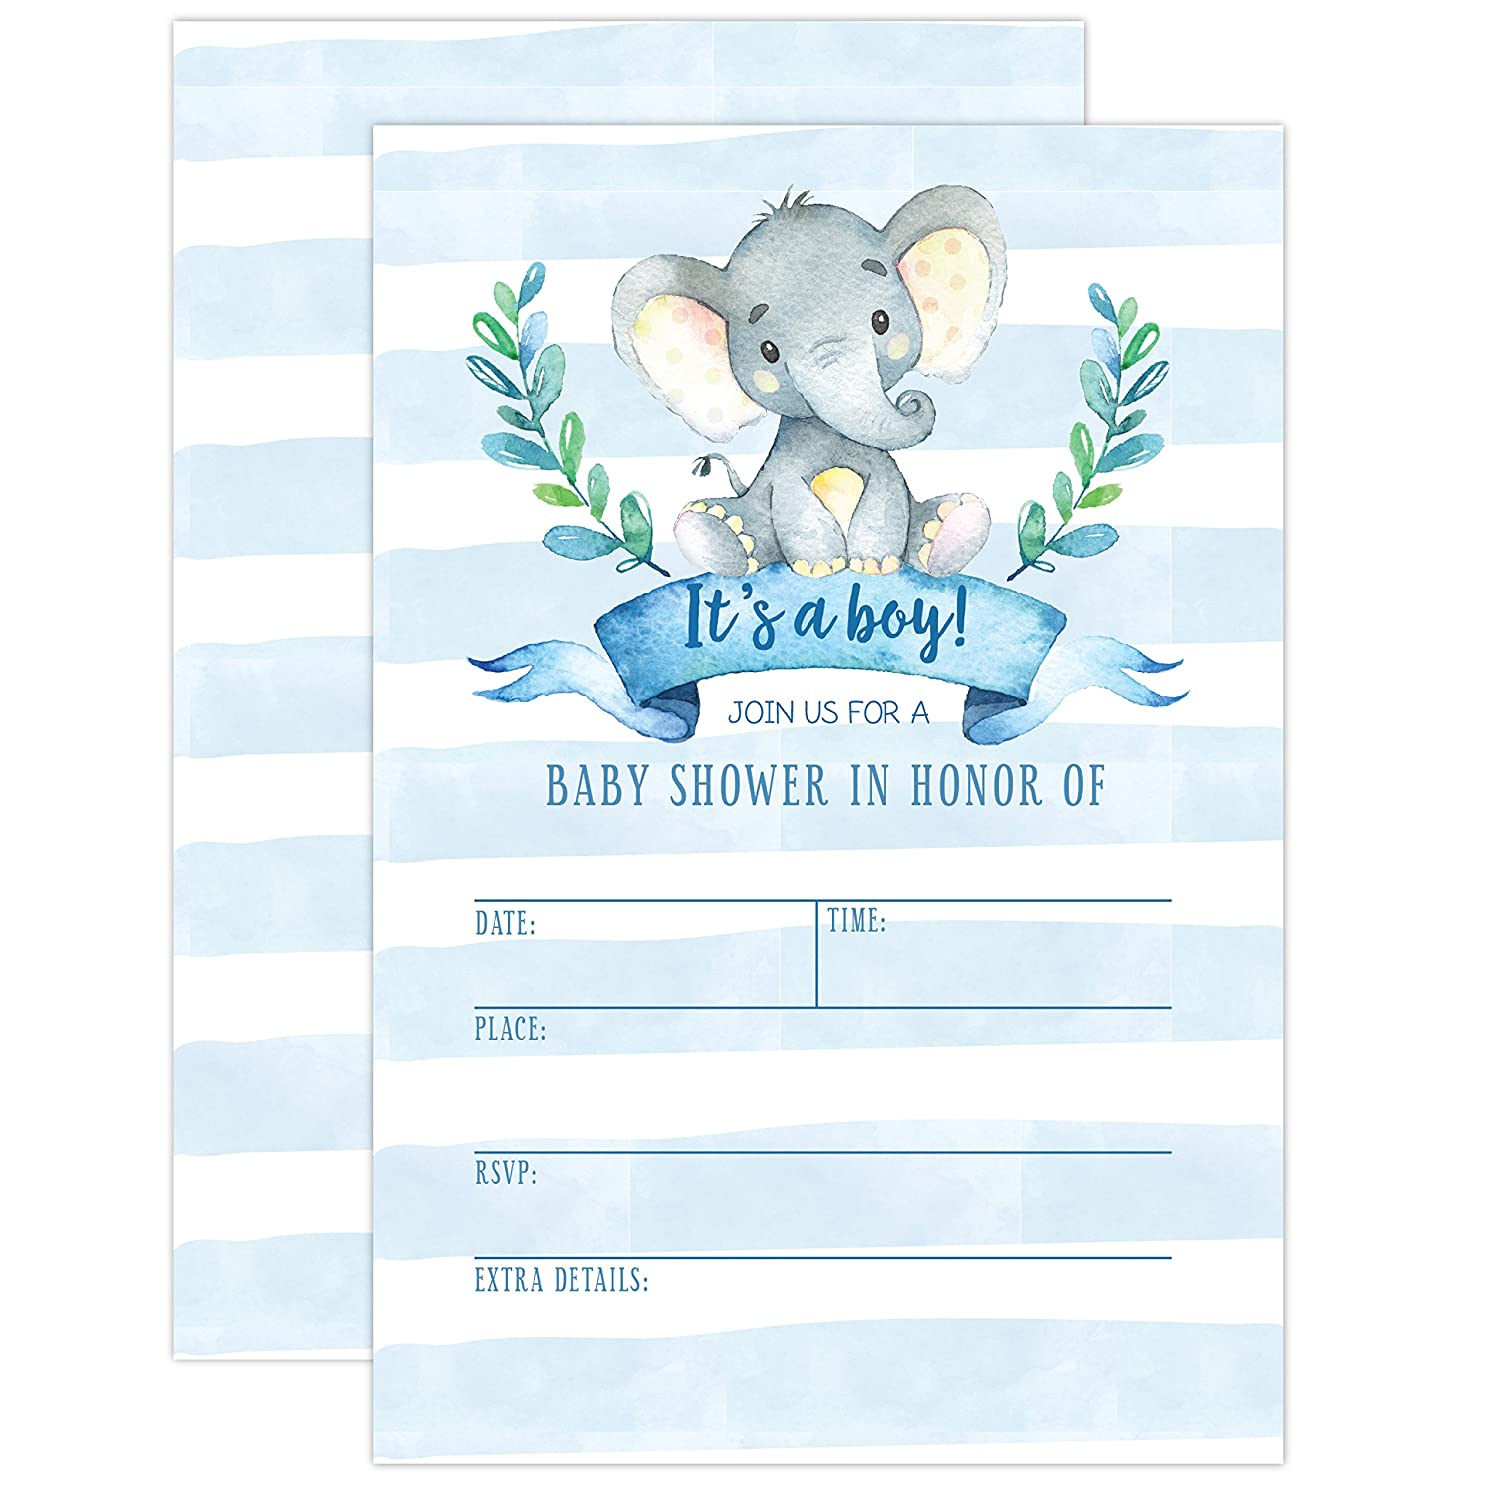 Boy Baby Shower Invitation, Elephant Baby Shower Invitation, Jungle Baby Shower Invite, Tropical Safari Animals Baby Shower, It's a boy, 20 Fill in Invitations and Envelopes It's a boy Your Main Event Prints